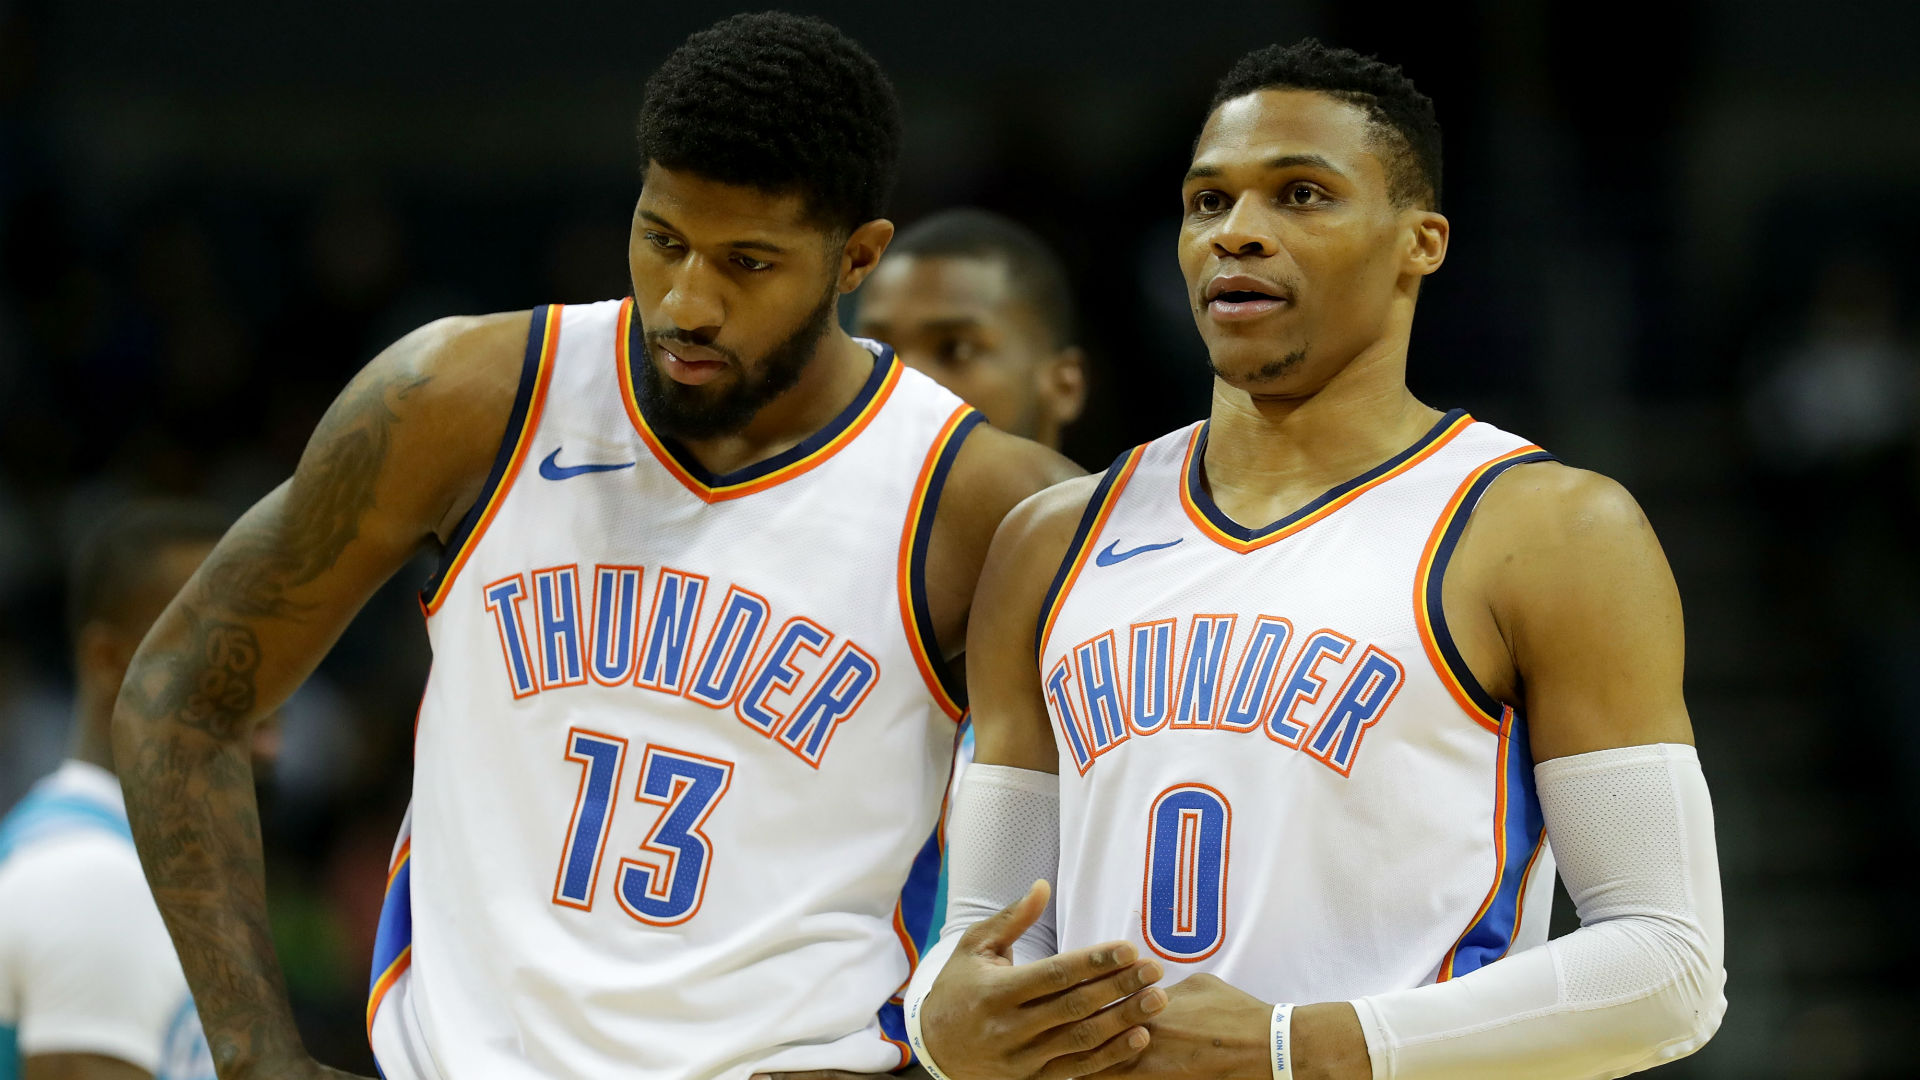 Free agency decision 'easier' thanks to Russell Westbrook's character — Paul George